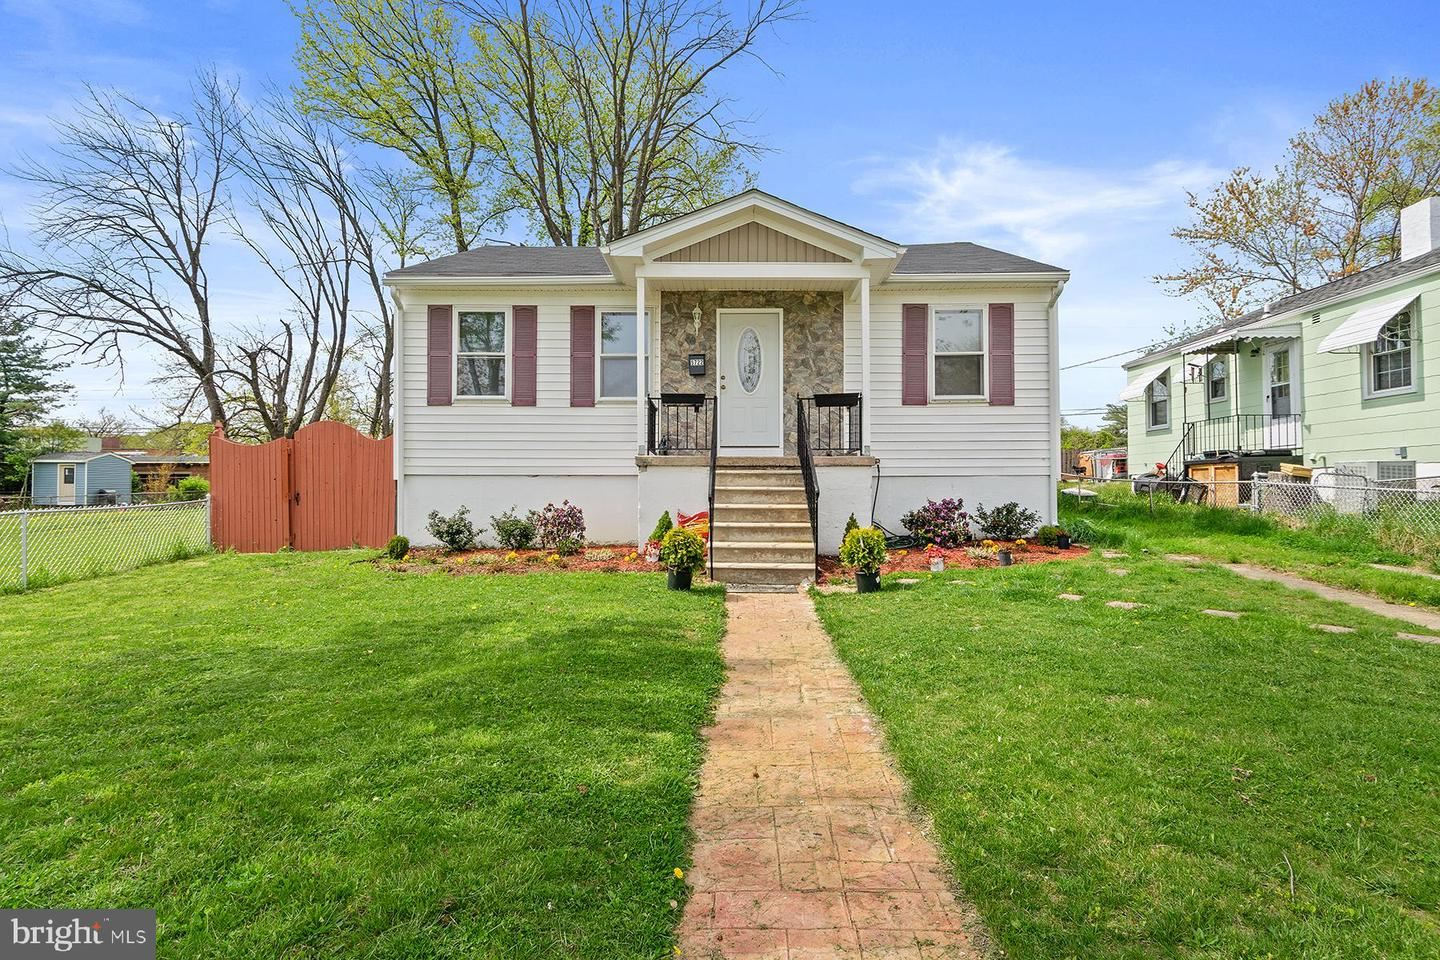 5722 NEWHOLME AVE, Baltimore, MD 21206 - MLS#: MDBA548080